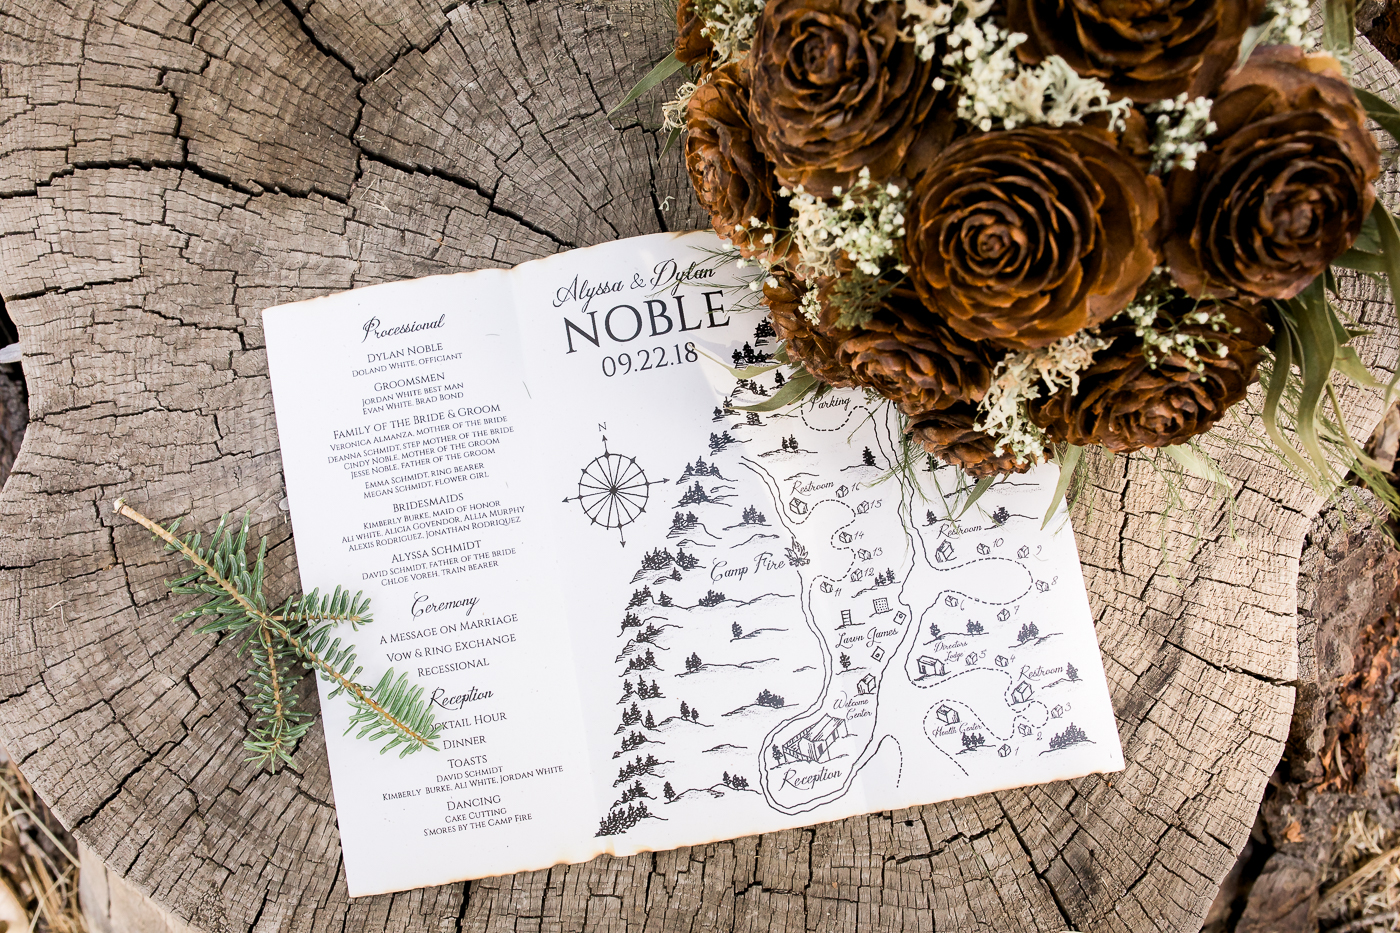 Wedding invitation with map